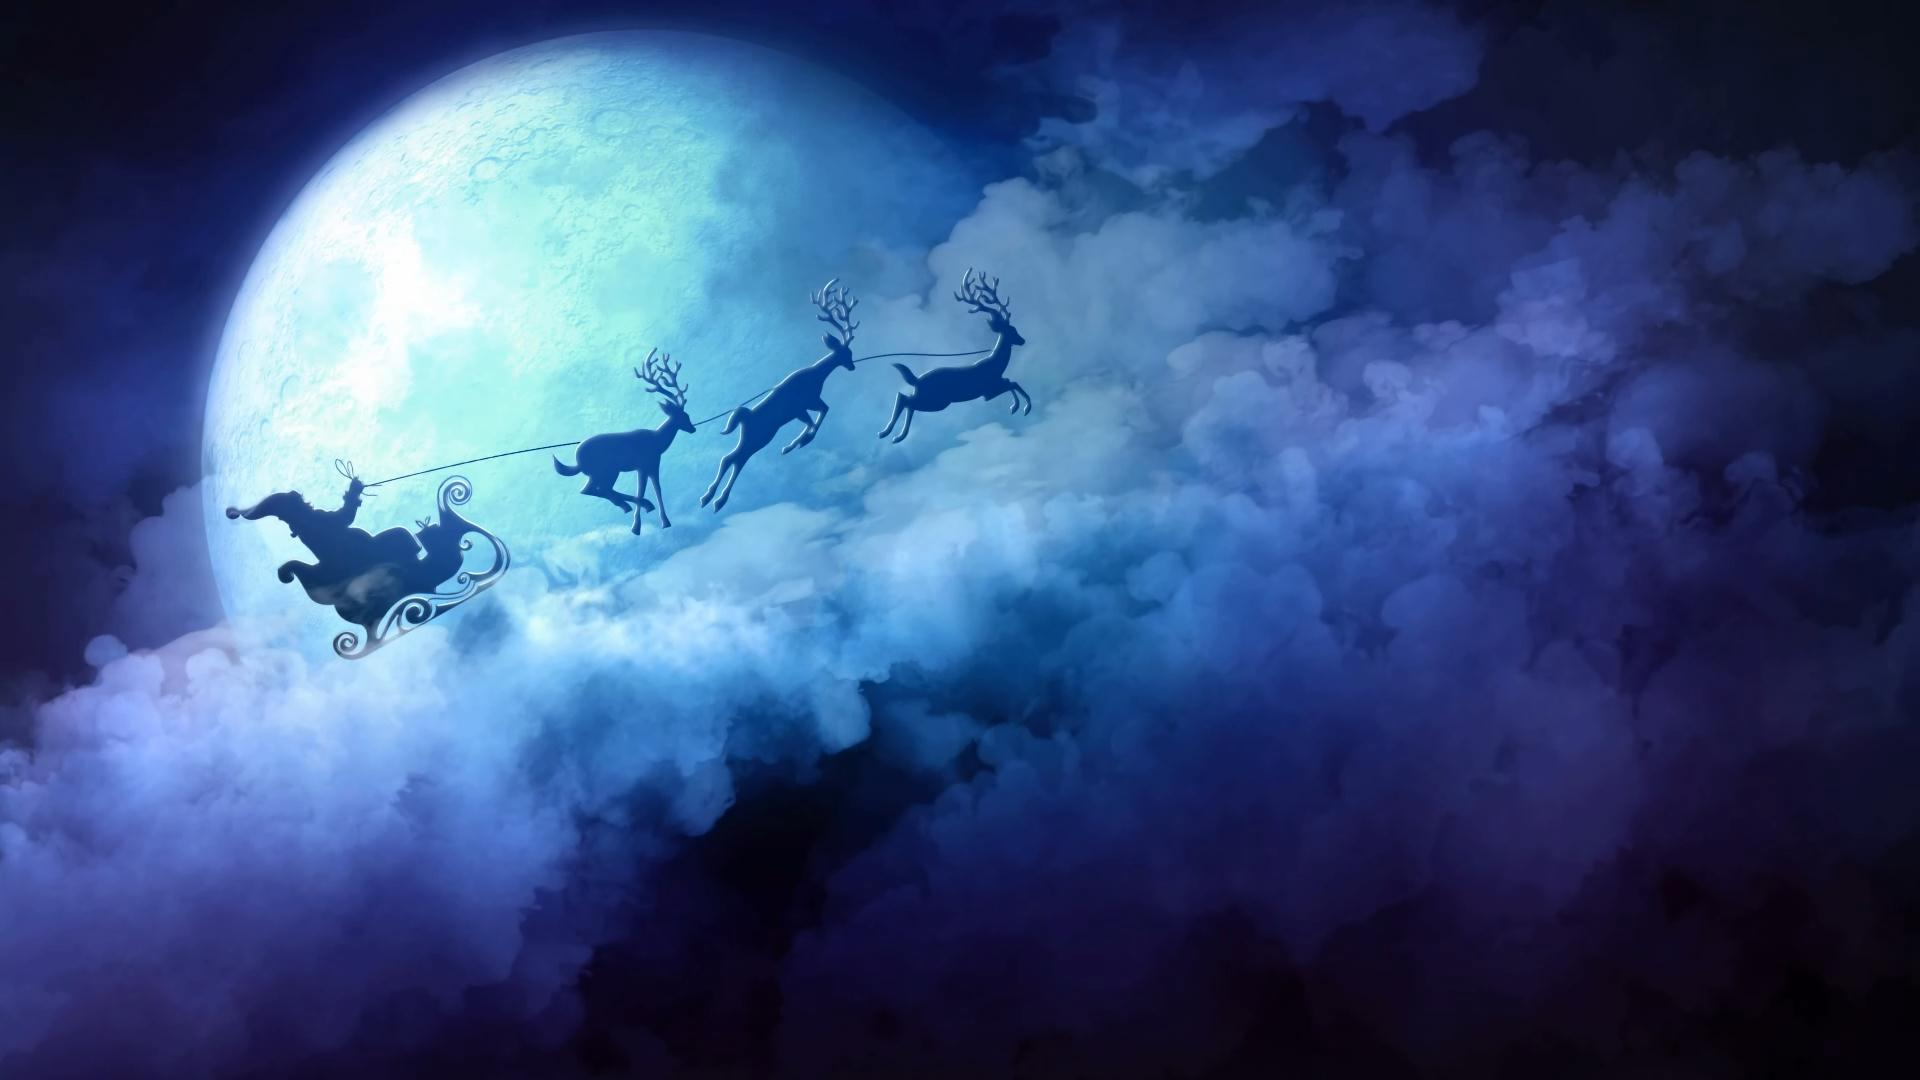 Collection-of-hundreds-of-Live-Christmas-from-all-over-the-world-wallpaper-wpc5803568